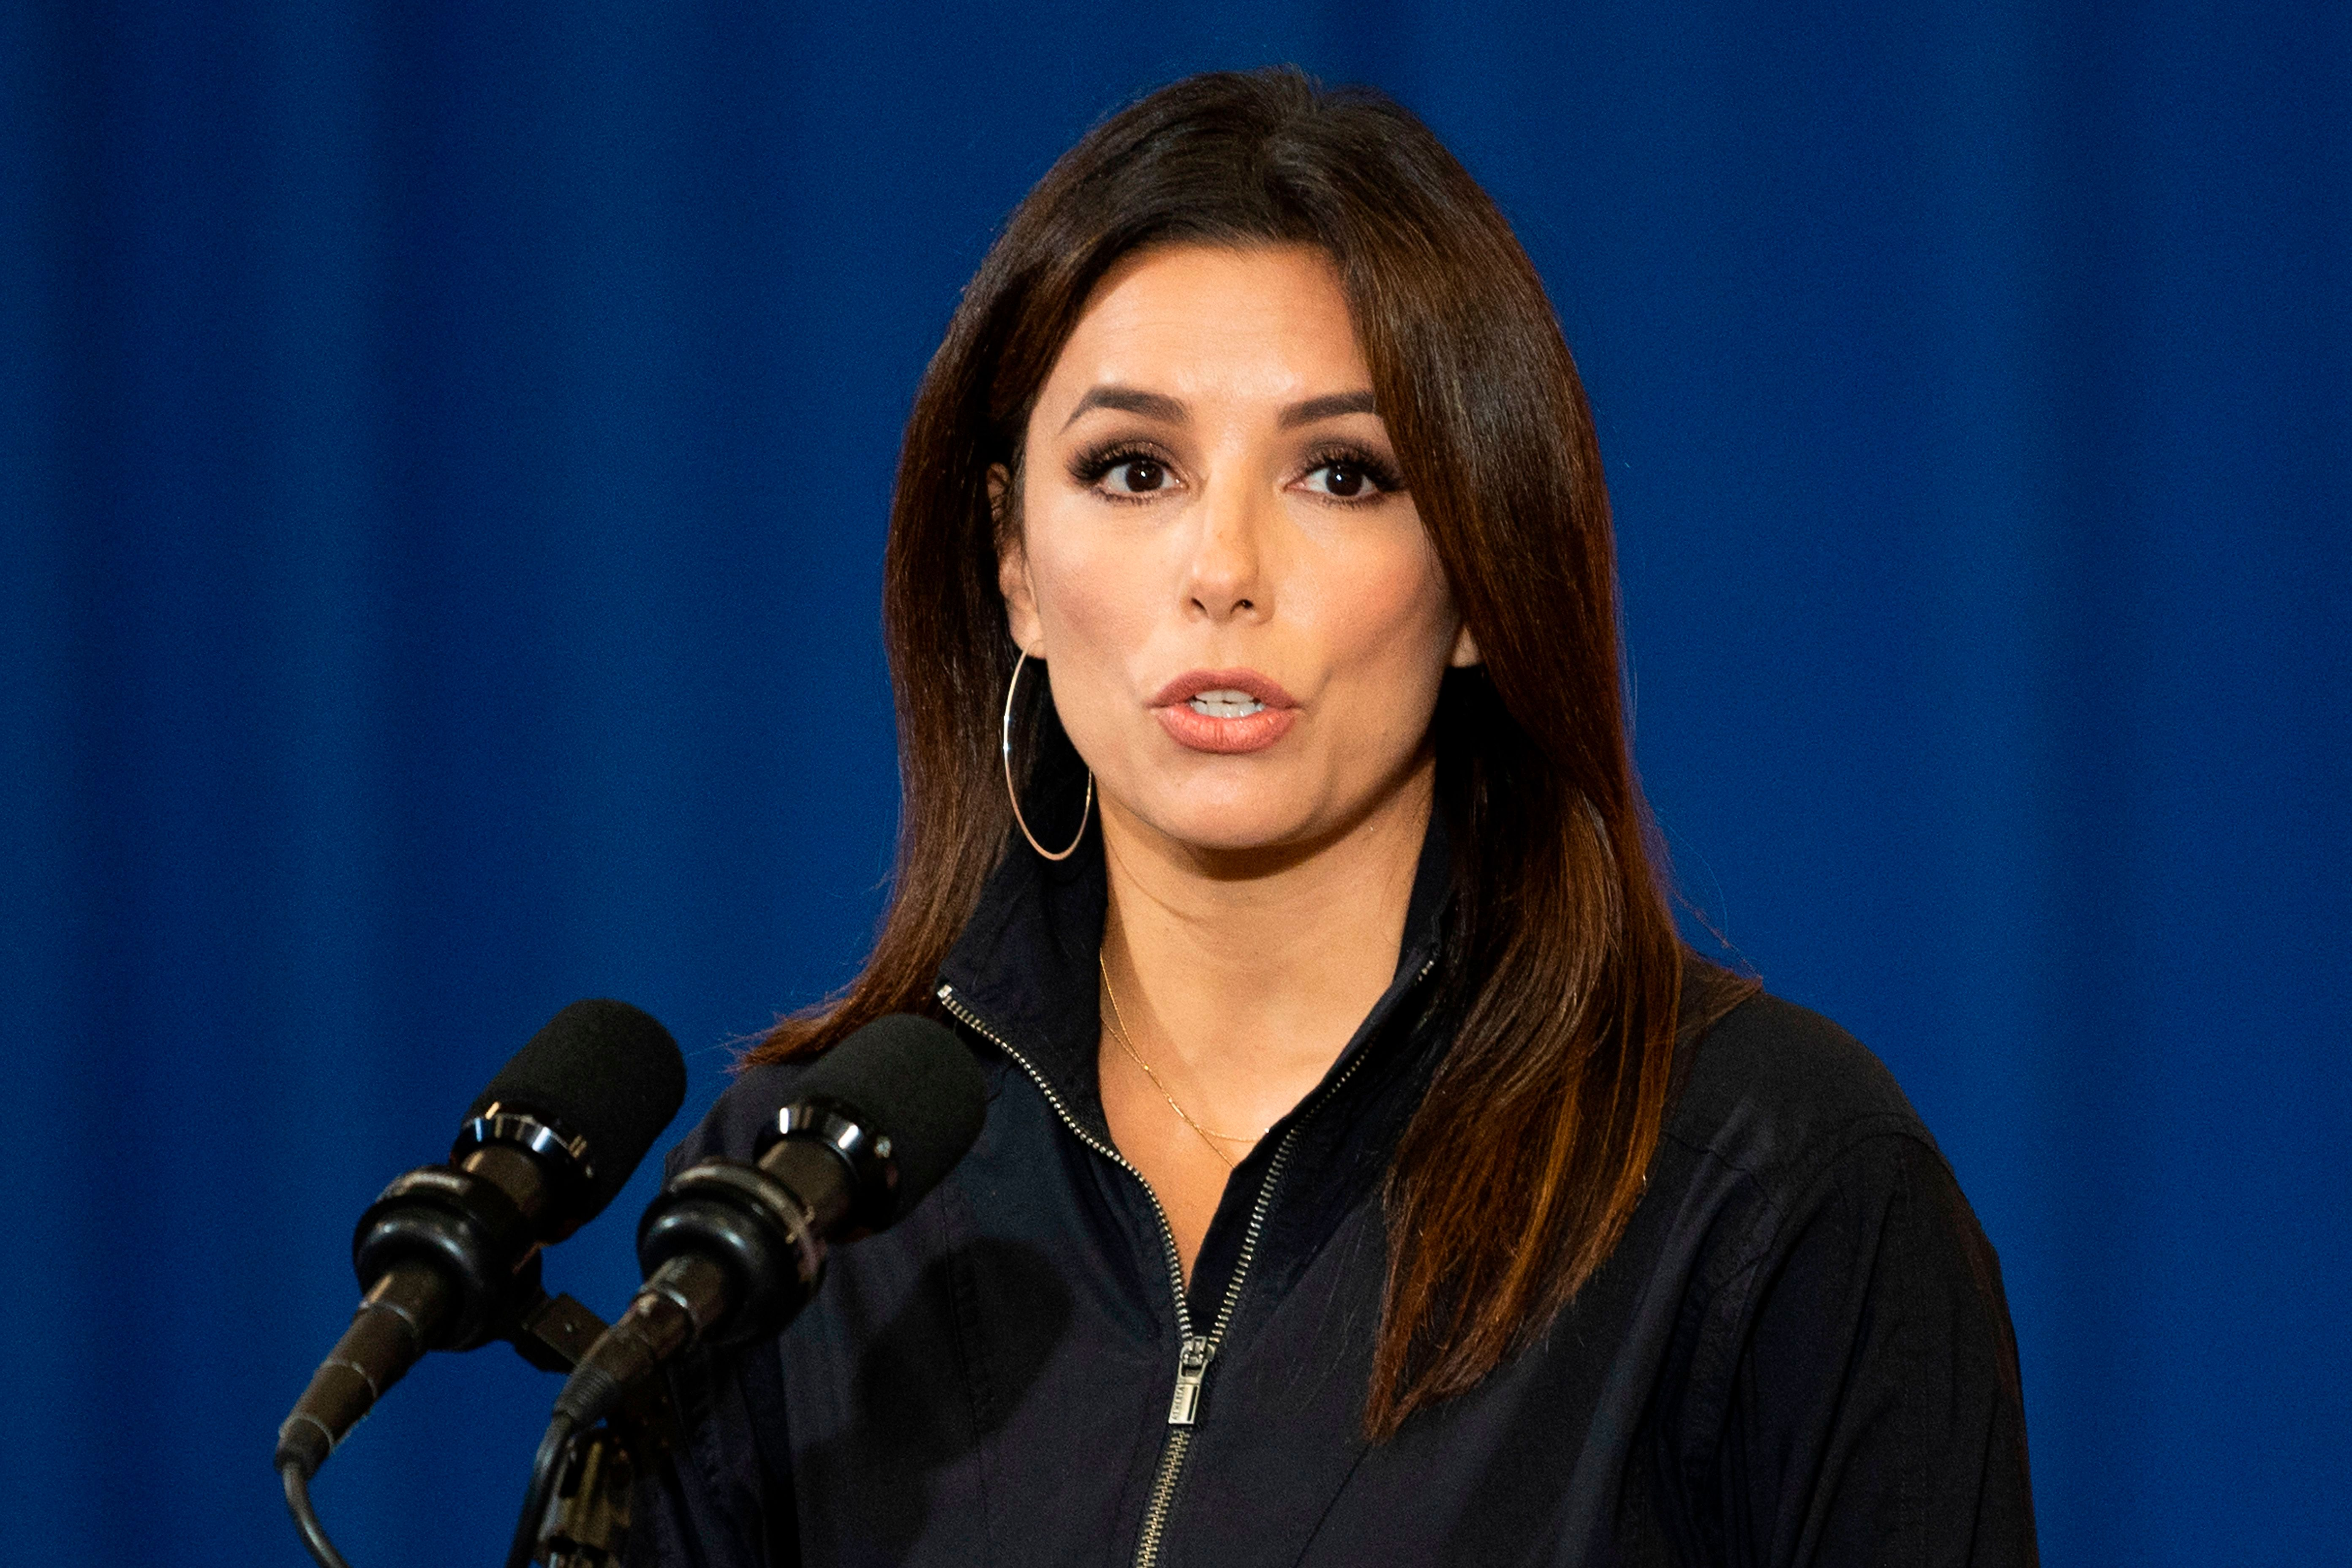 Eva Longoria, actress, activist, and Co-Founder of Latino Victory, speaks before Democratic Presidential Candidate Joe Biden as they participate in a Hispanic Heritage Month event at the Osceola Heritage Park in Kissimmee, Florida on September 15, 2020 | Photo: Getty Images